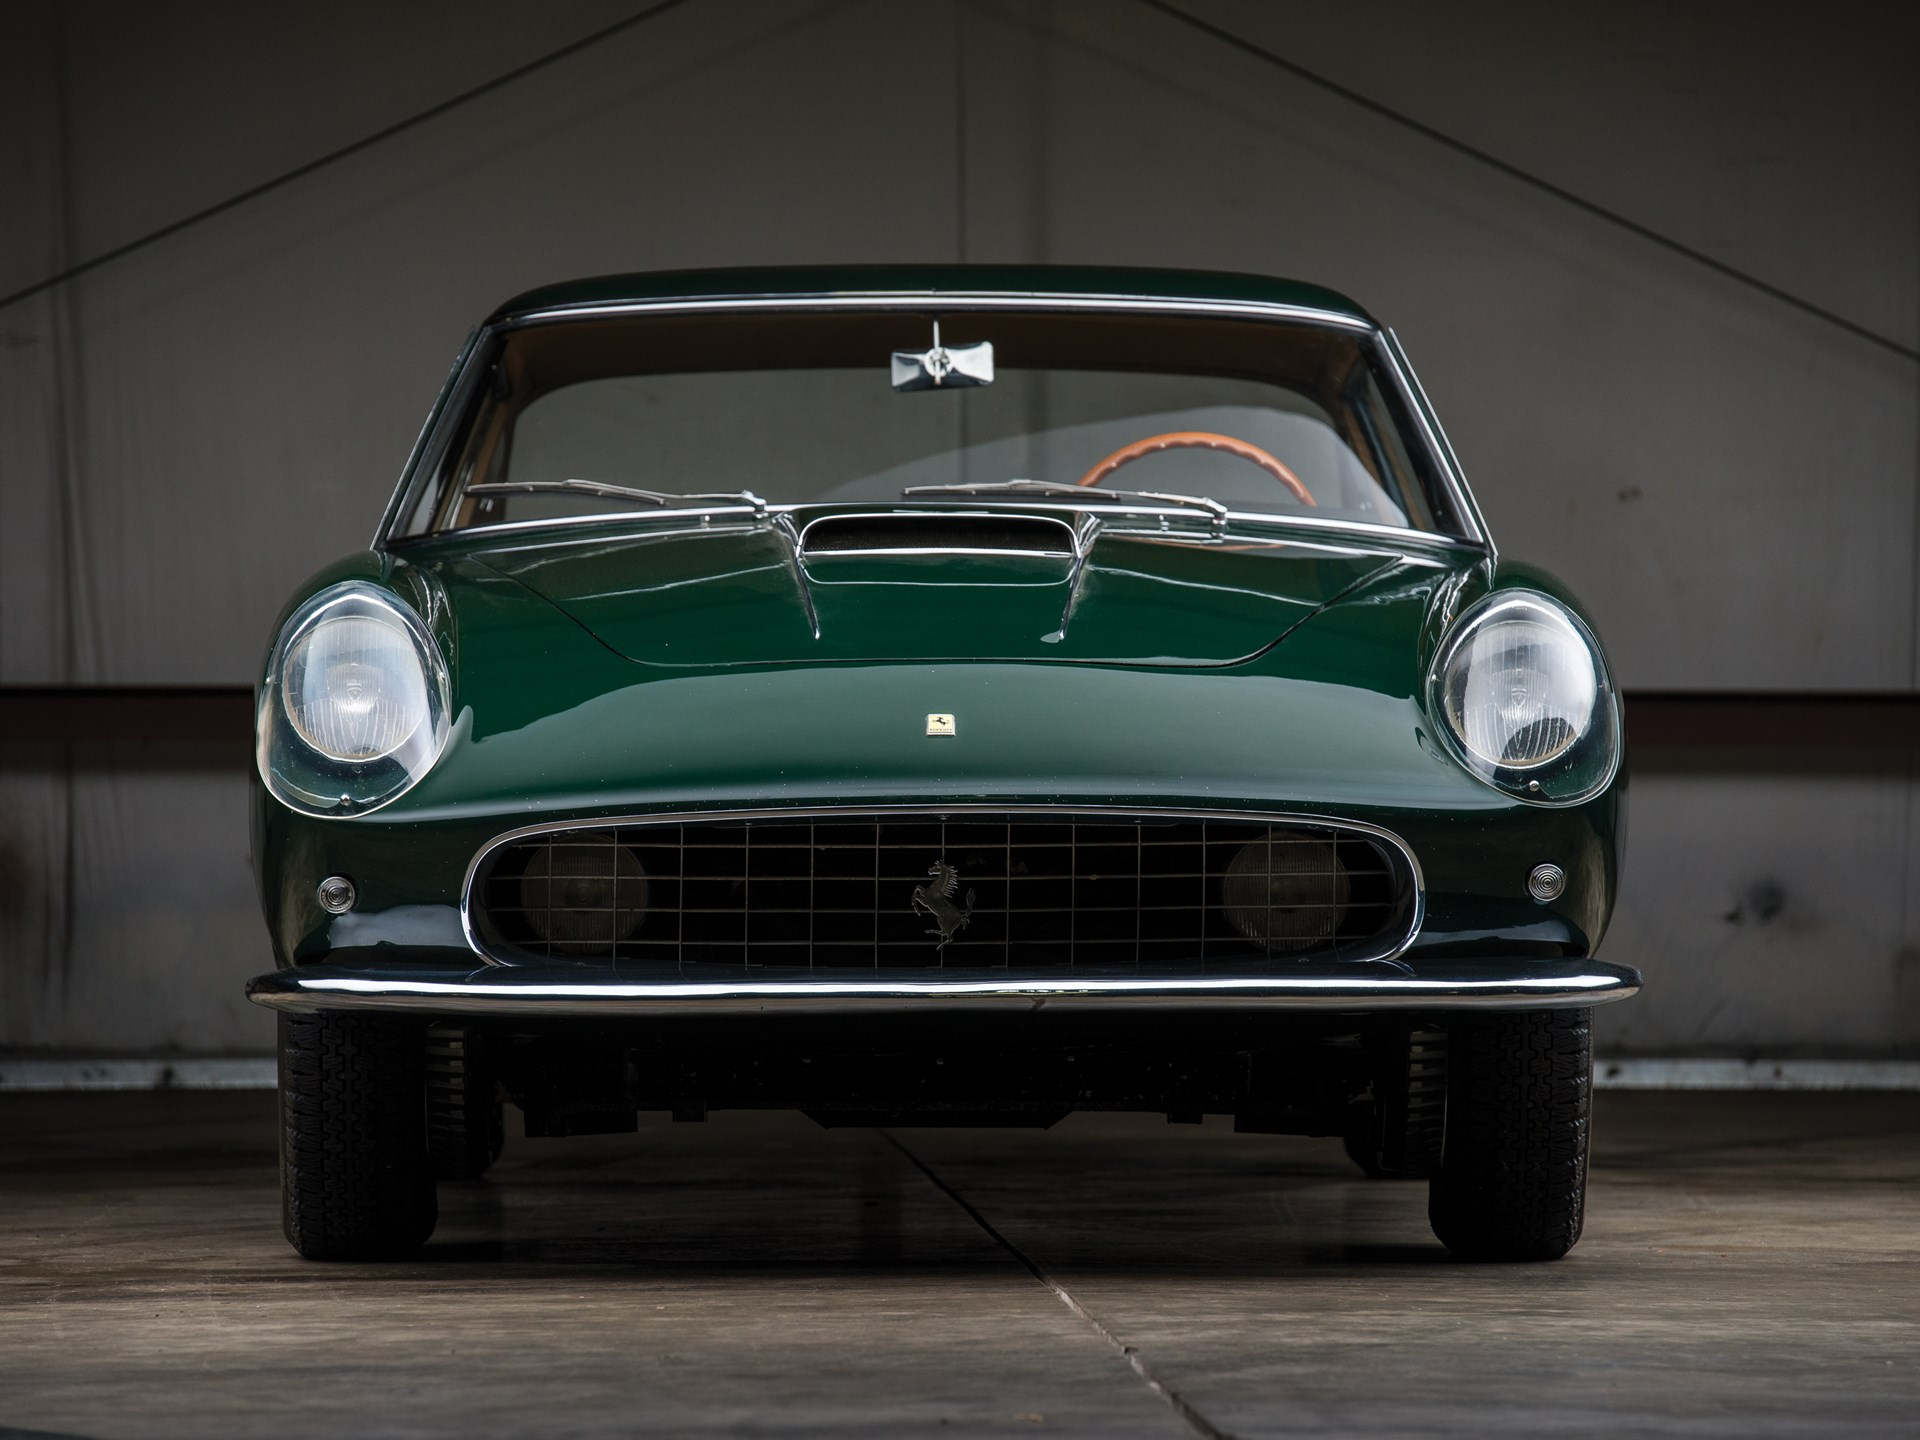 1959 Ferrari 410 Superamerica Series III Coupe by Pinin Farina